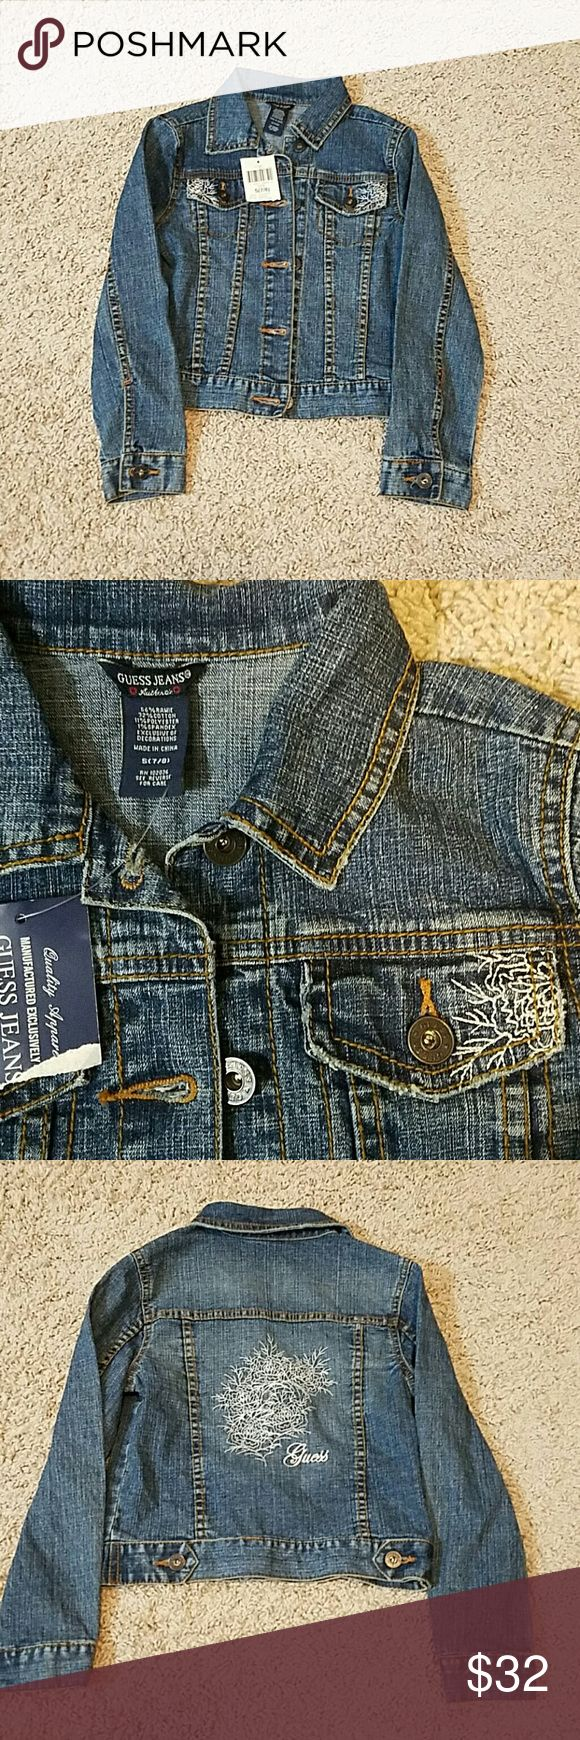 """GUESS GIRL JACKET NWT Girl Guess Jacket, gorgeous and light weight to wear. Size 7 - 8  AP to AP 30""""  LENGTH 16""""  WAIST FLAT DOUBLED 26"""" Guess Jackets & Coats Jean Jackets"""